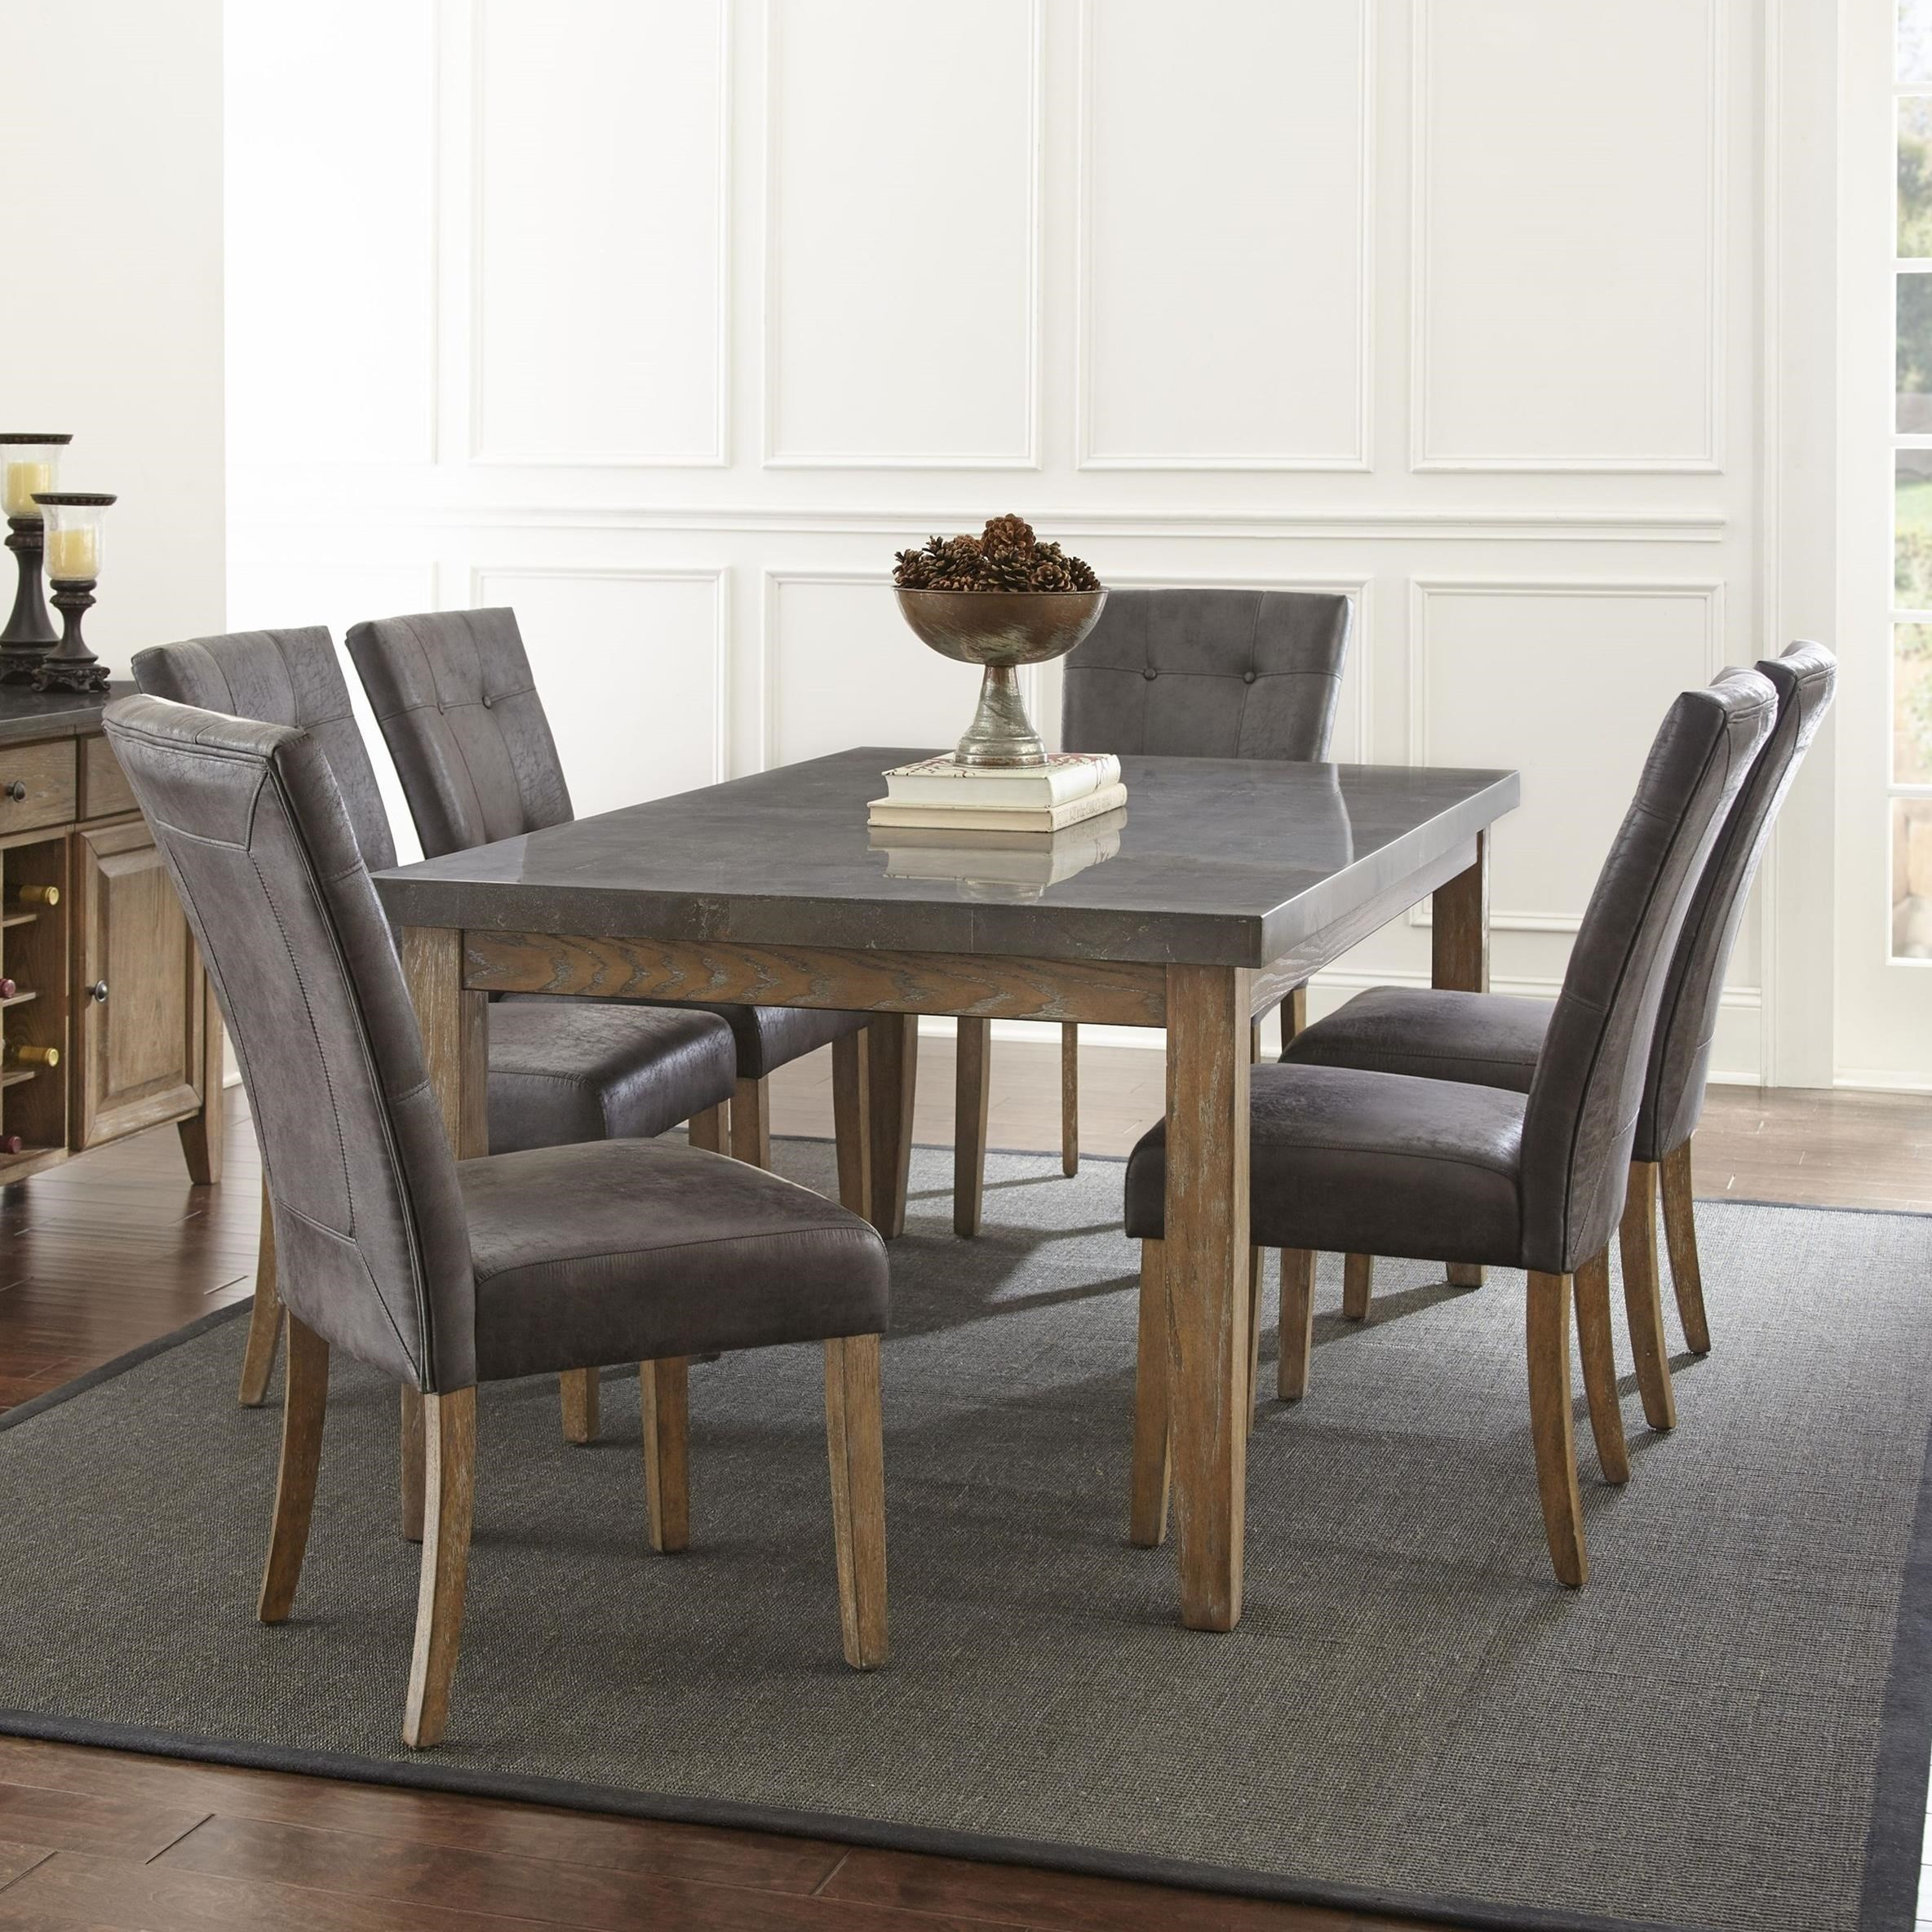 Steve Silver Debby 7 Piece Transitional Table And Chair Set With Bluestone  Top